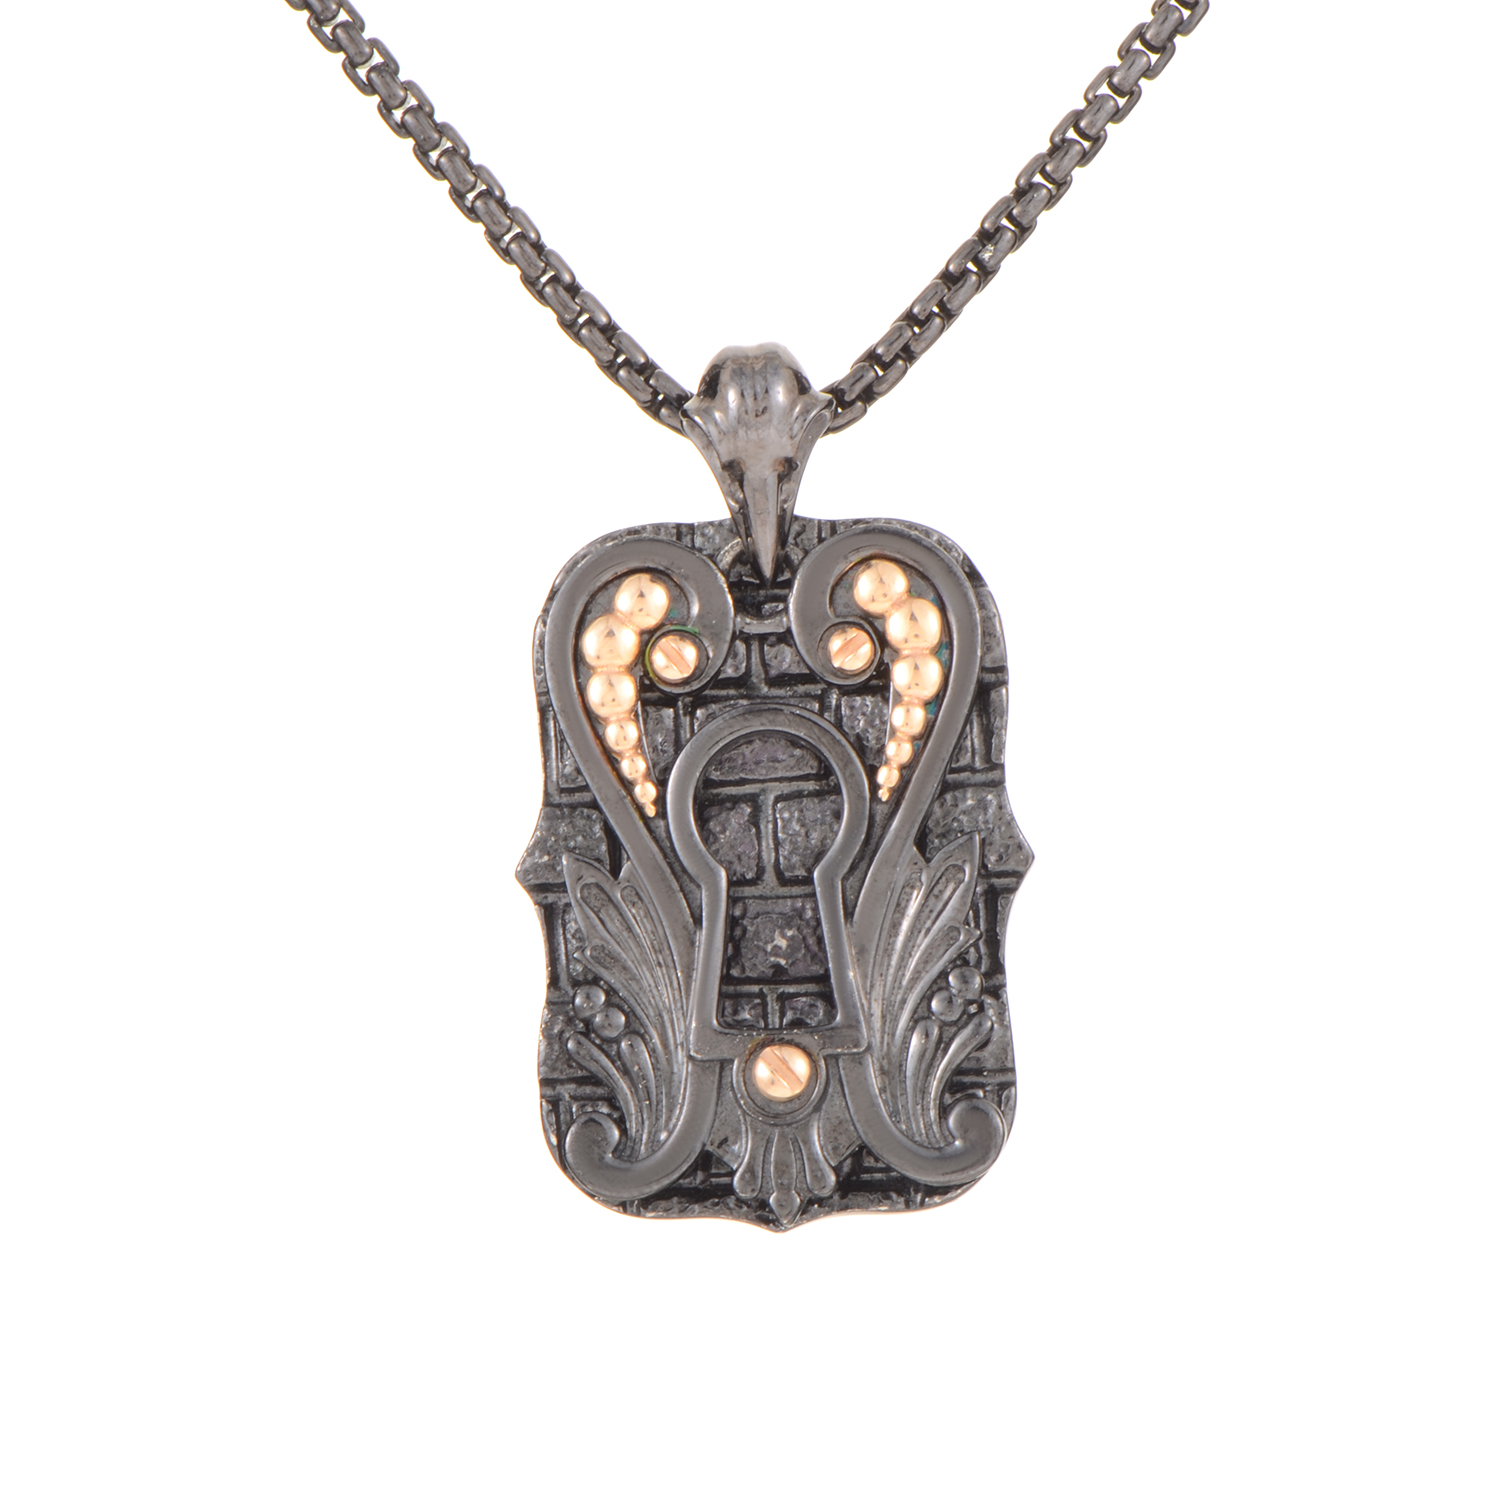 London Calling Gold-Plated Silver Double Dog Tag Pendant Necklace